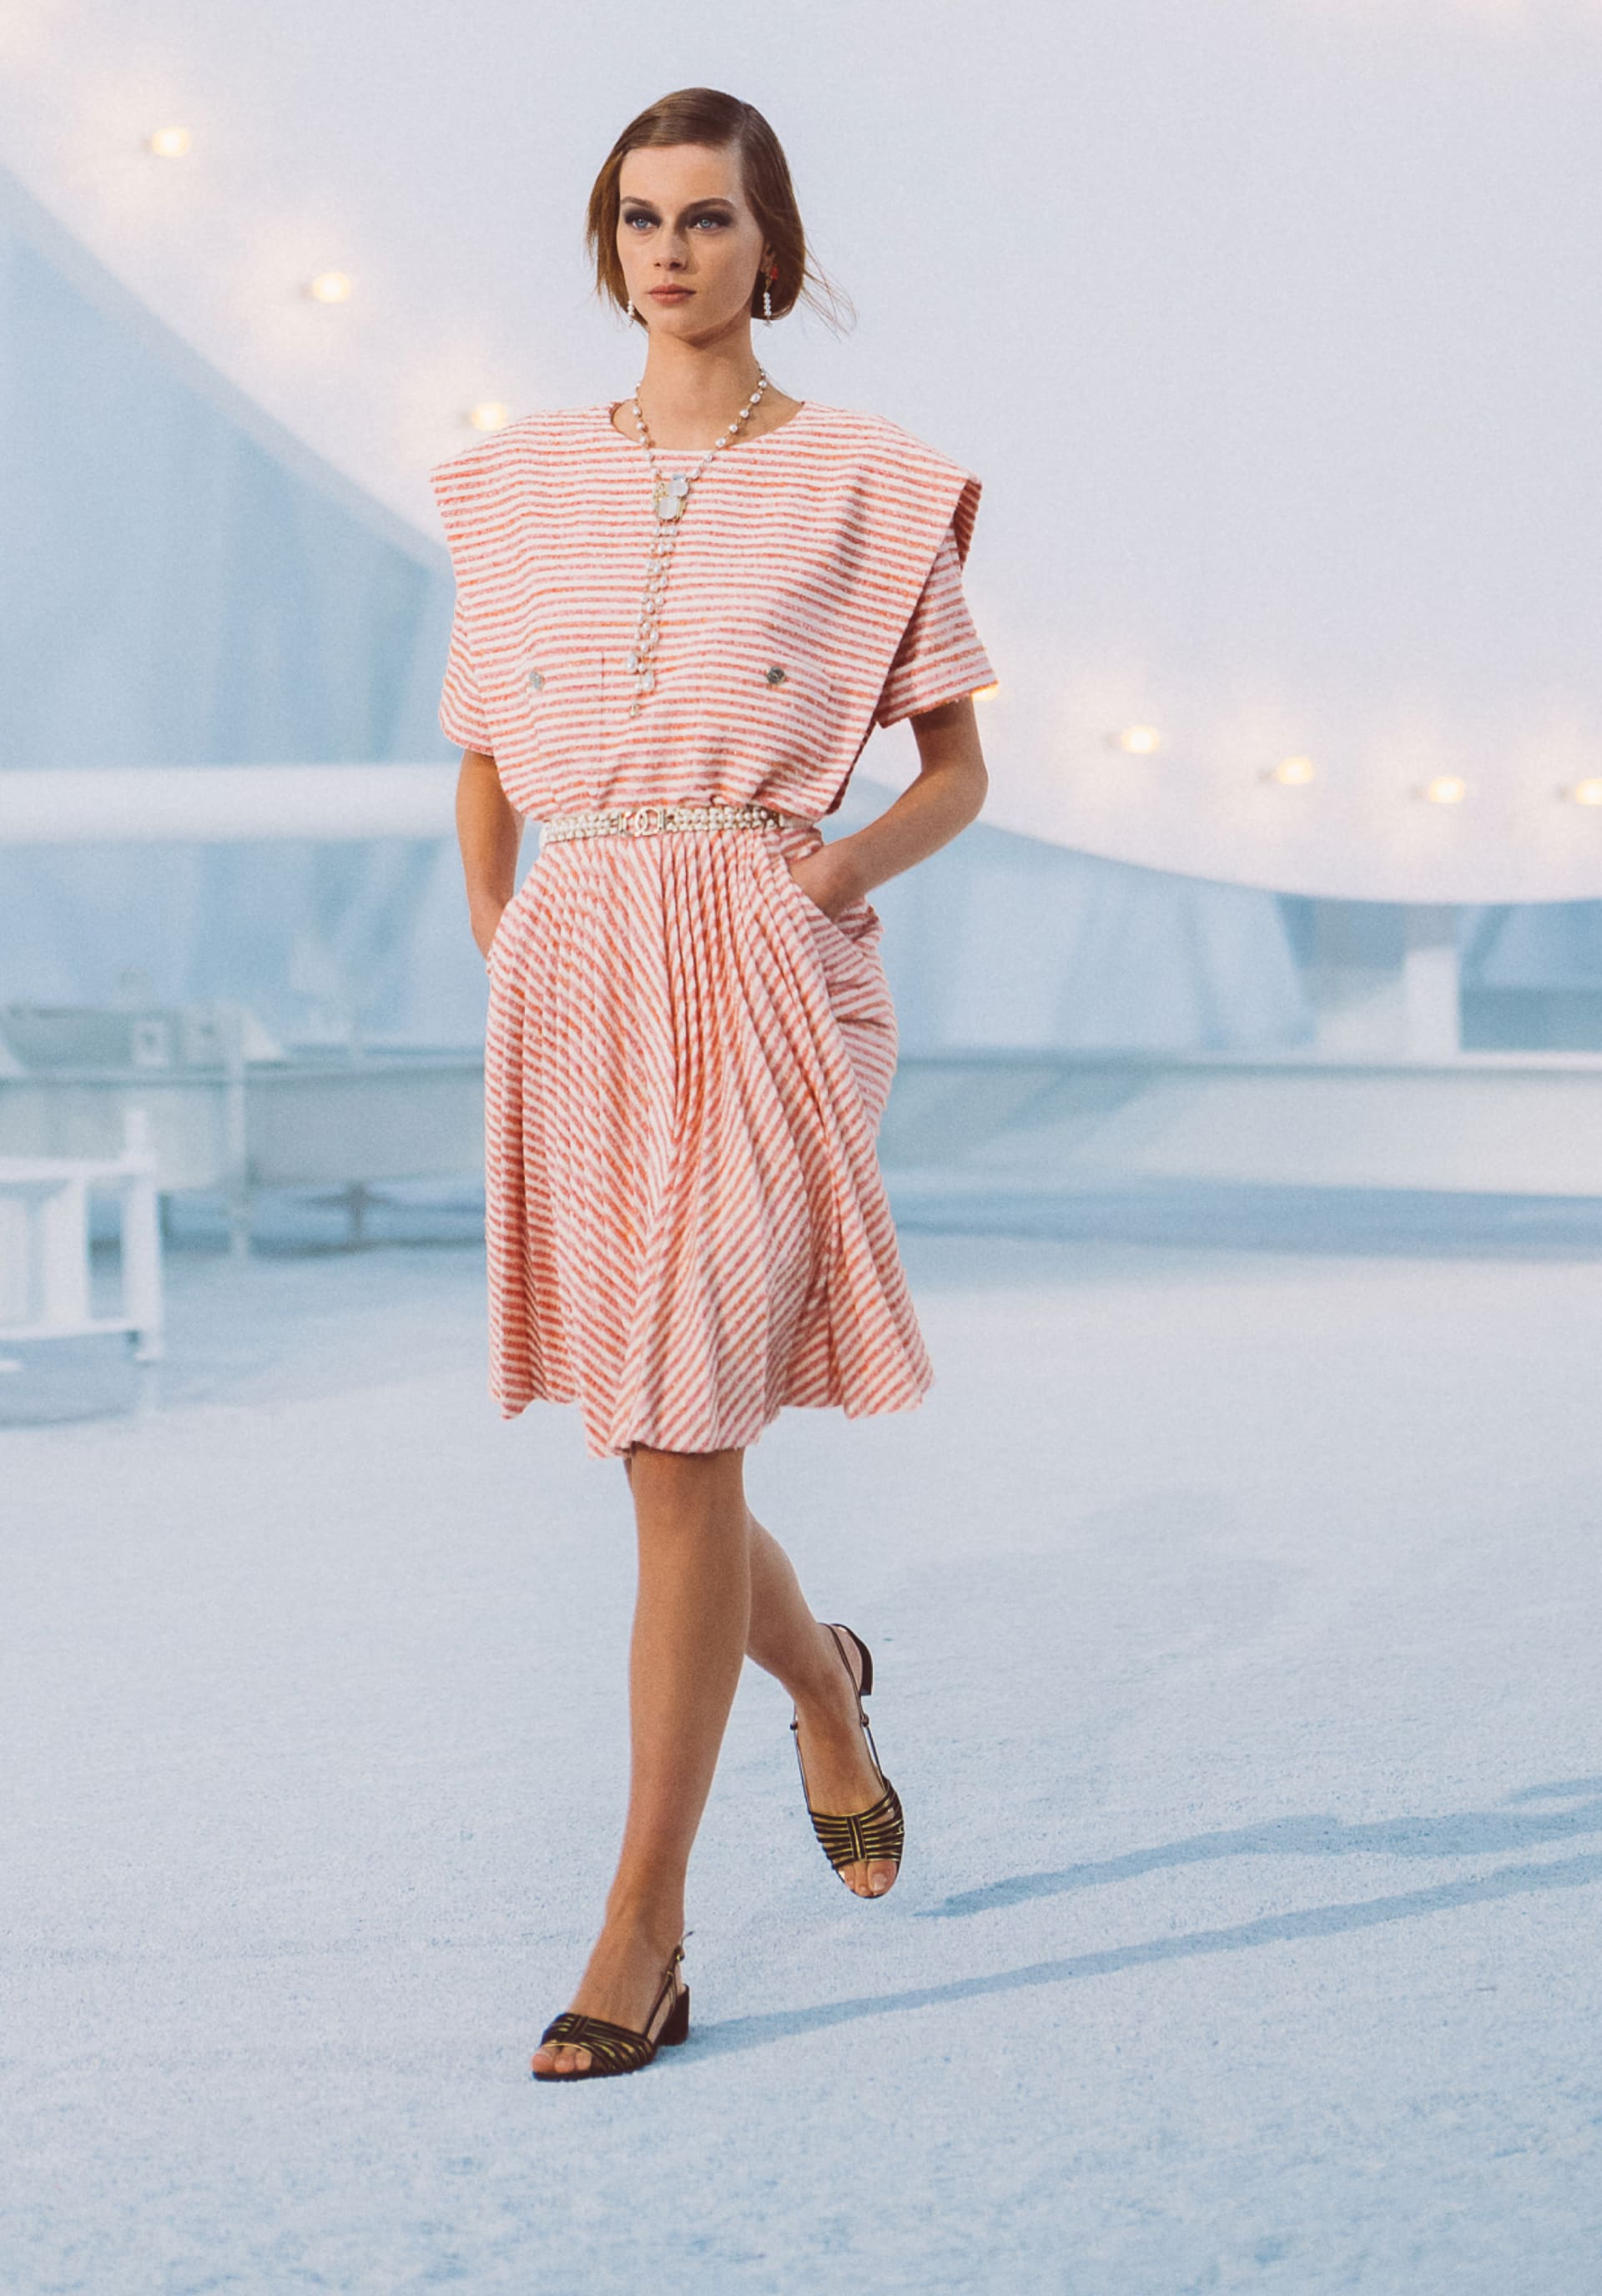 View 1 - Look40 - Spring-Summer 2021 - see full sized version